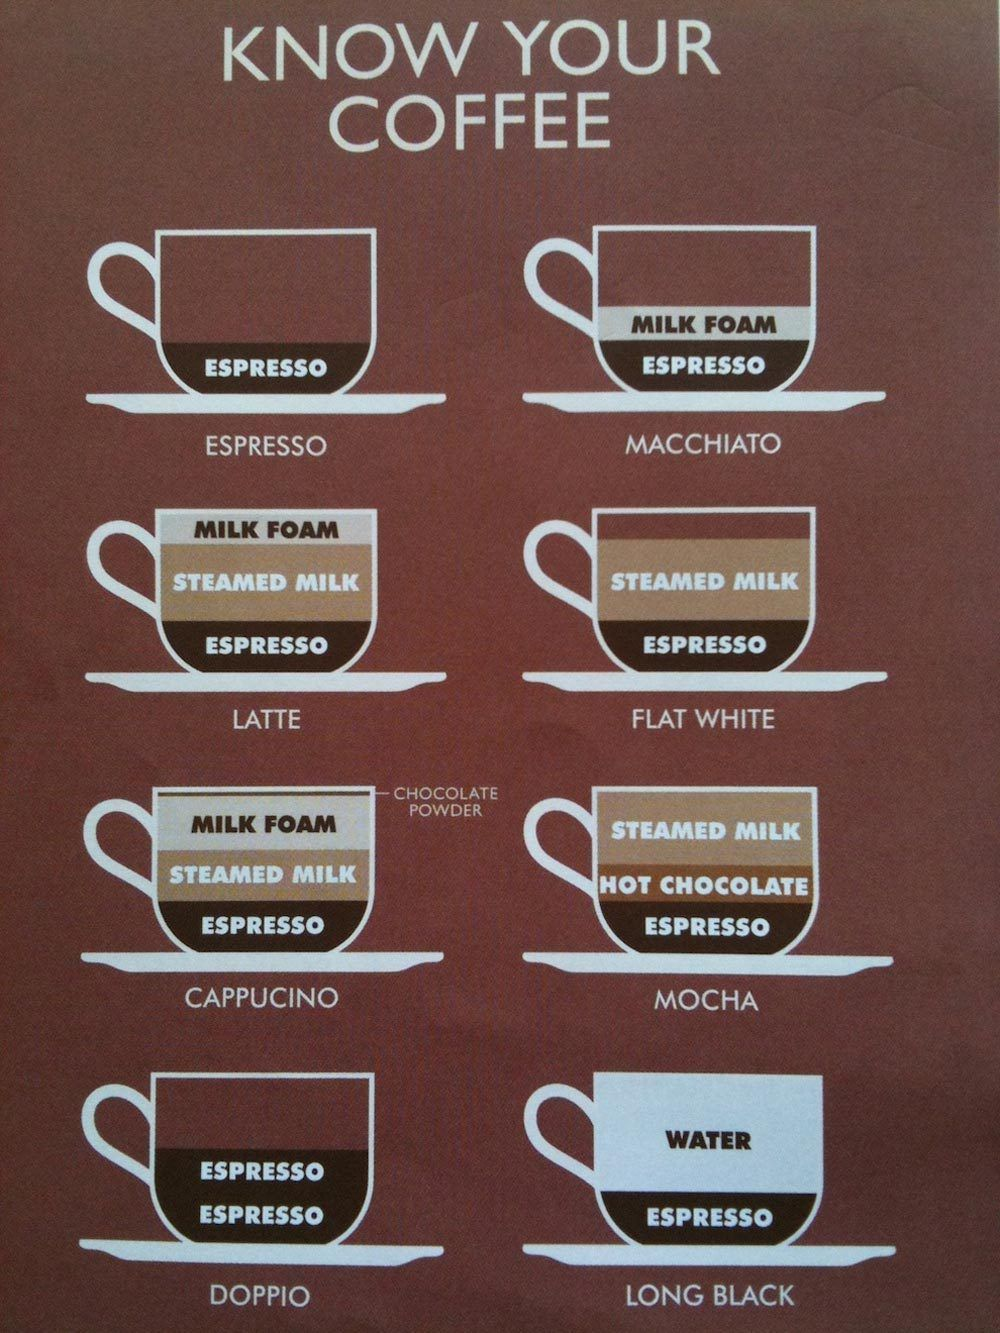 Coffee Types Explained Poster Coffee Type Coffee Addict Coffee Drinks